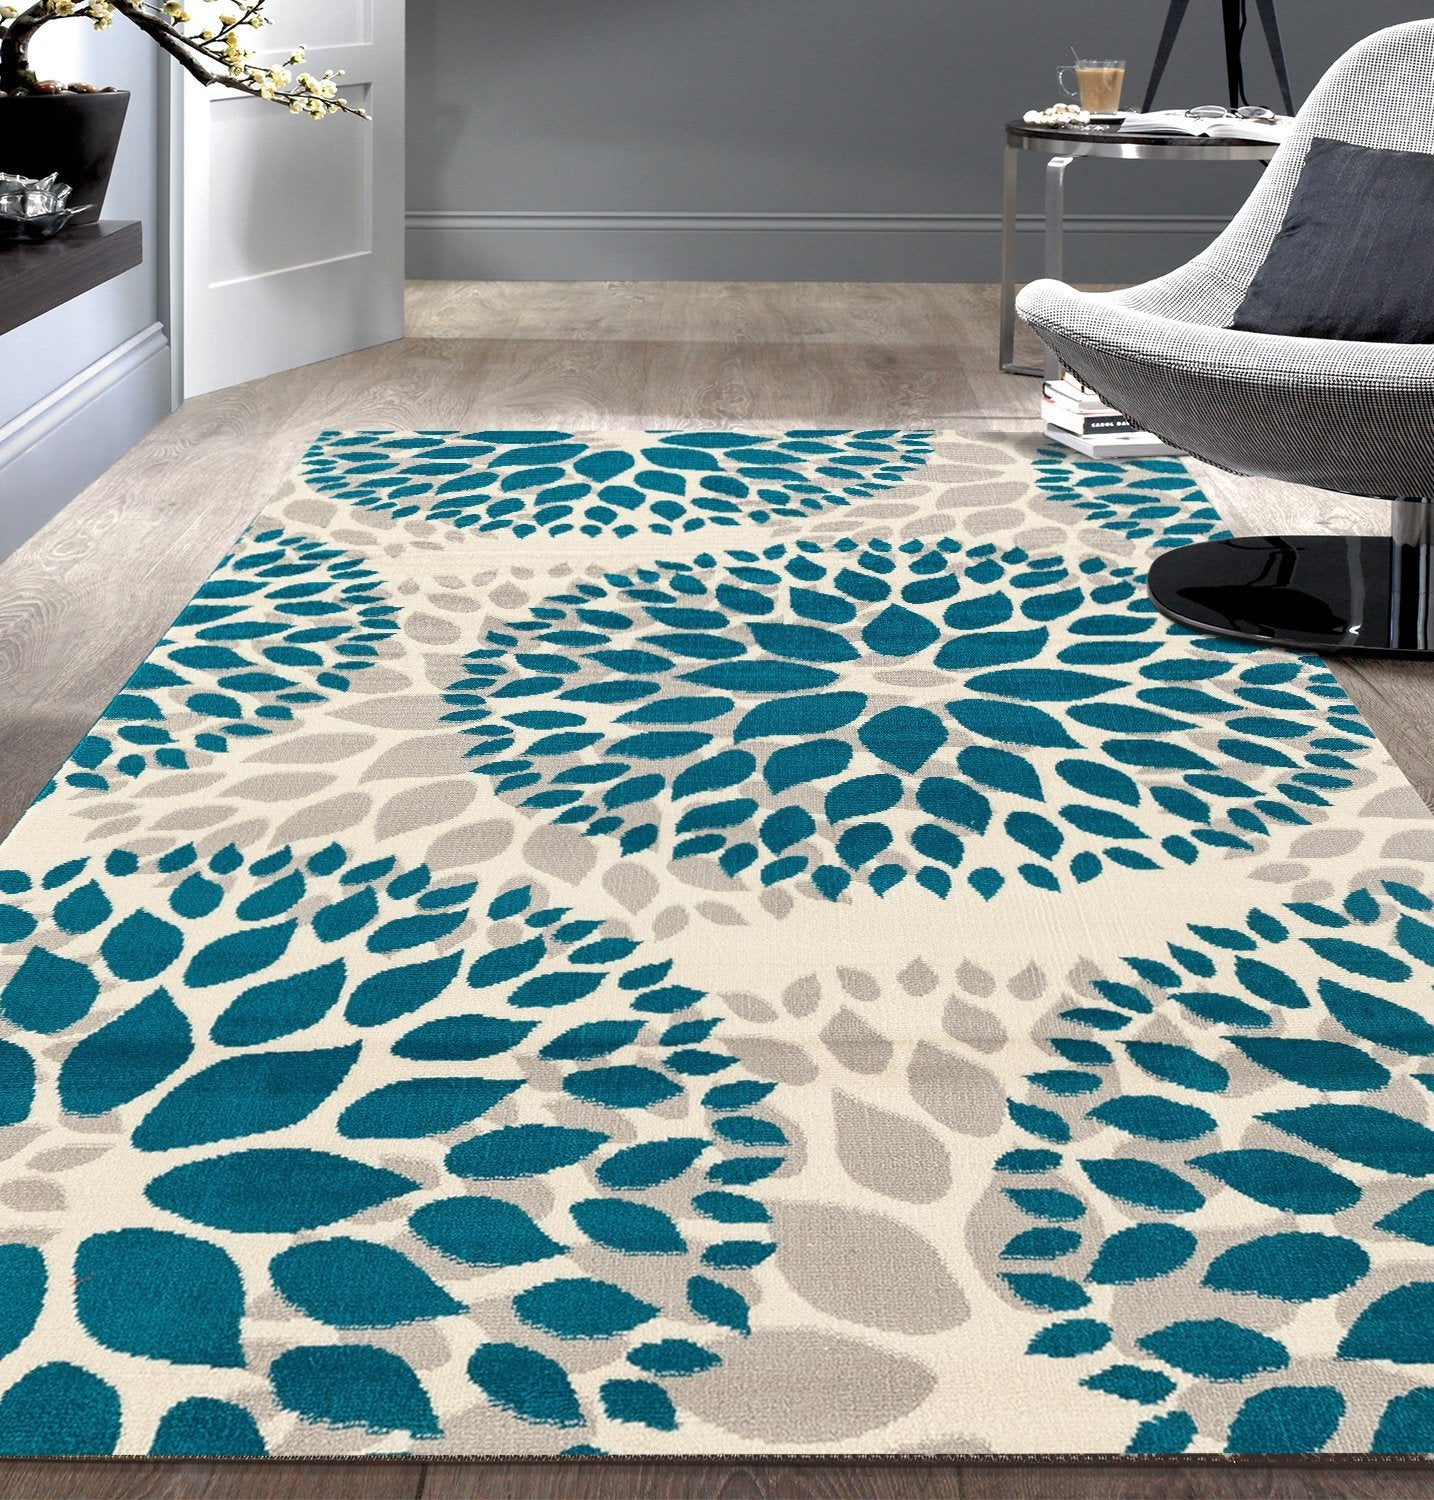 Floral Gray Grey Turquoise Blue Area Rug Modern Rugs And Decor